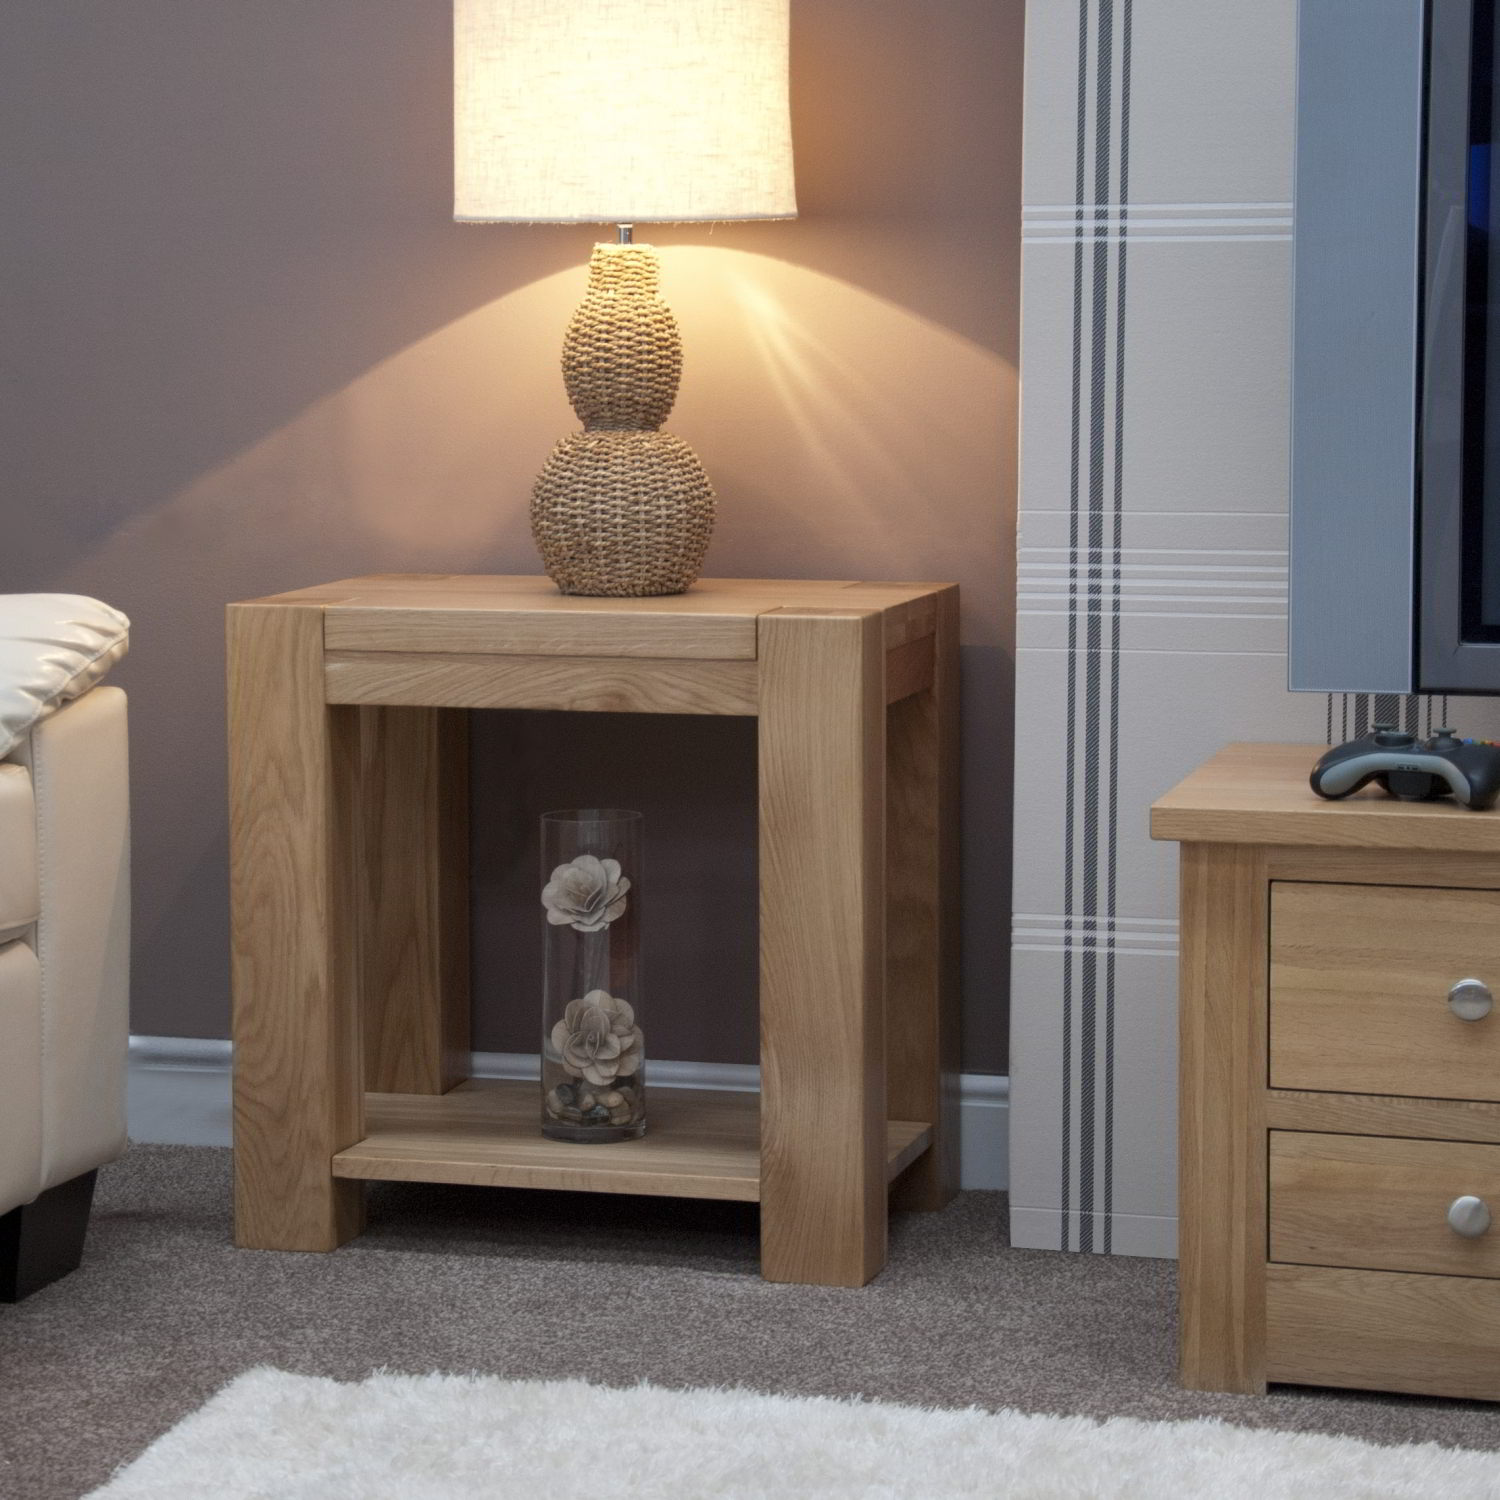 Pemberton solid chunky oak living room furniture lamp sofa - Glass side tables for living room uk ...